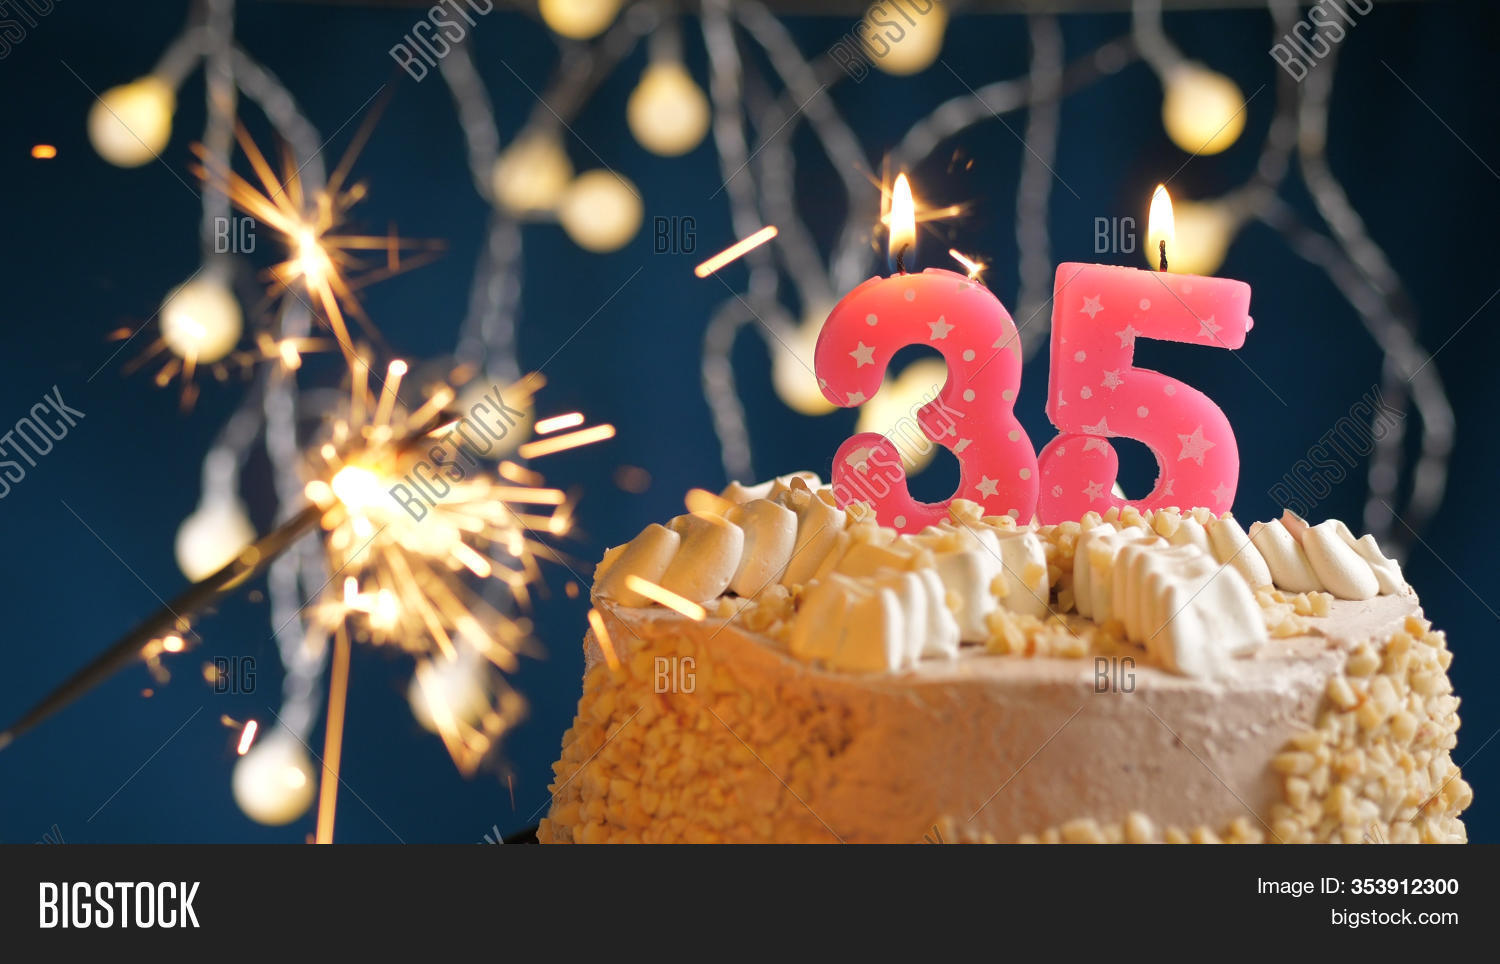 Awesome Birthday Cake 35 Image Photo Free Trial Bigstock Funny Birthday Cards Online Alyptdamsfinfo